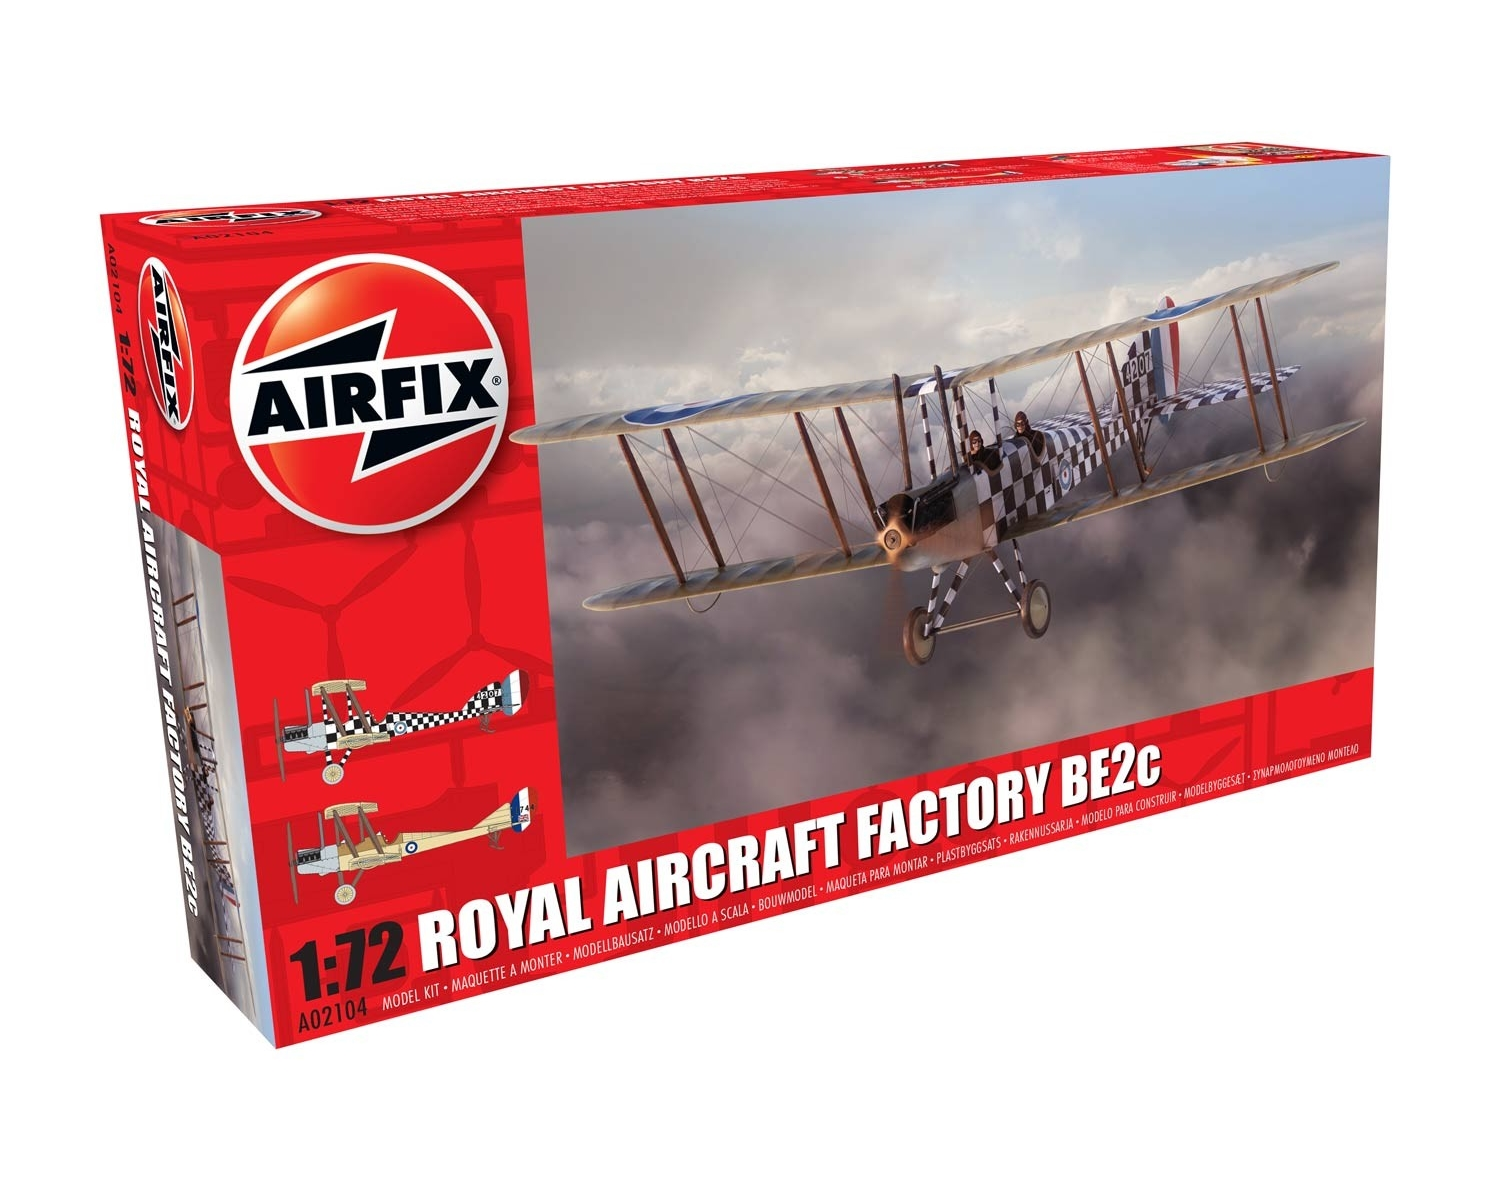 Airfix 02104 - ROYAL AIRCRAFT FACTORY BE2C